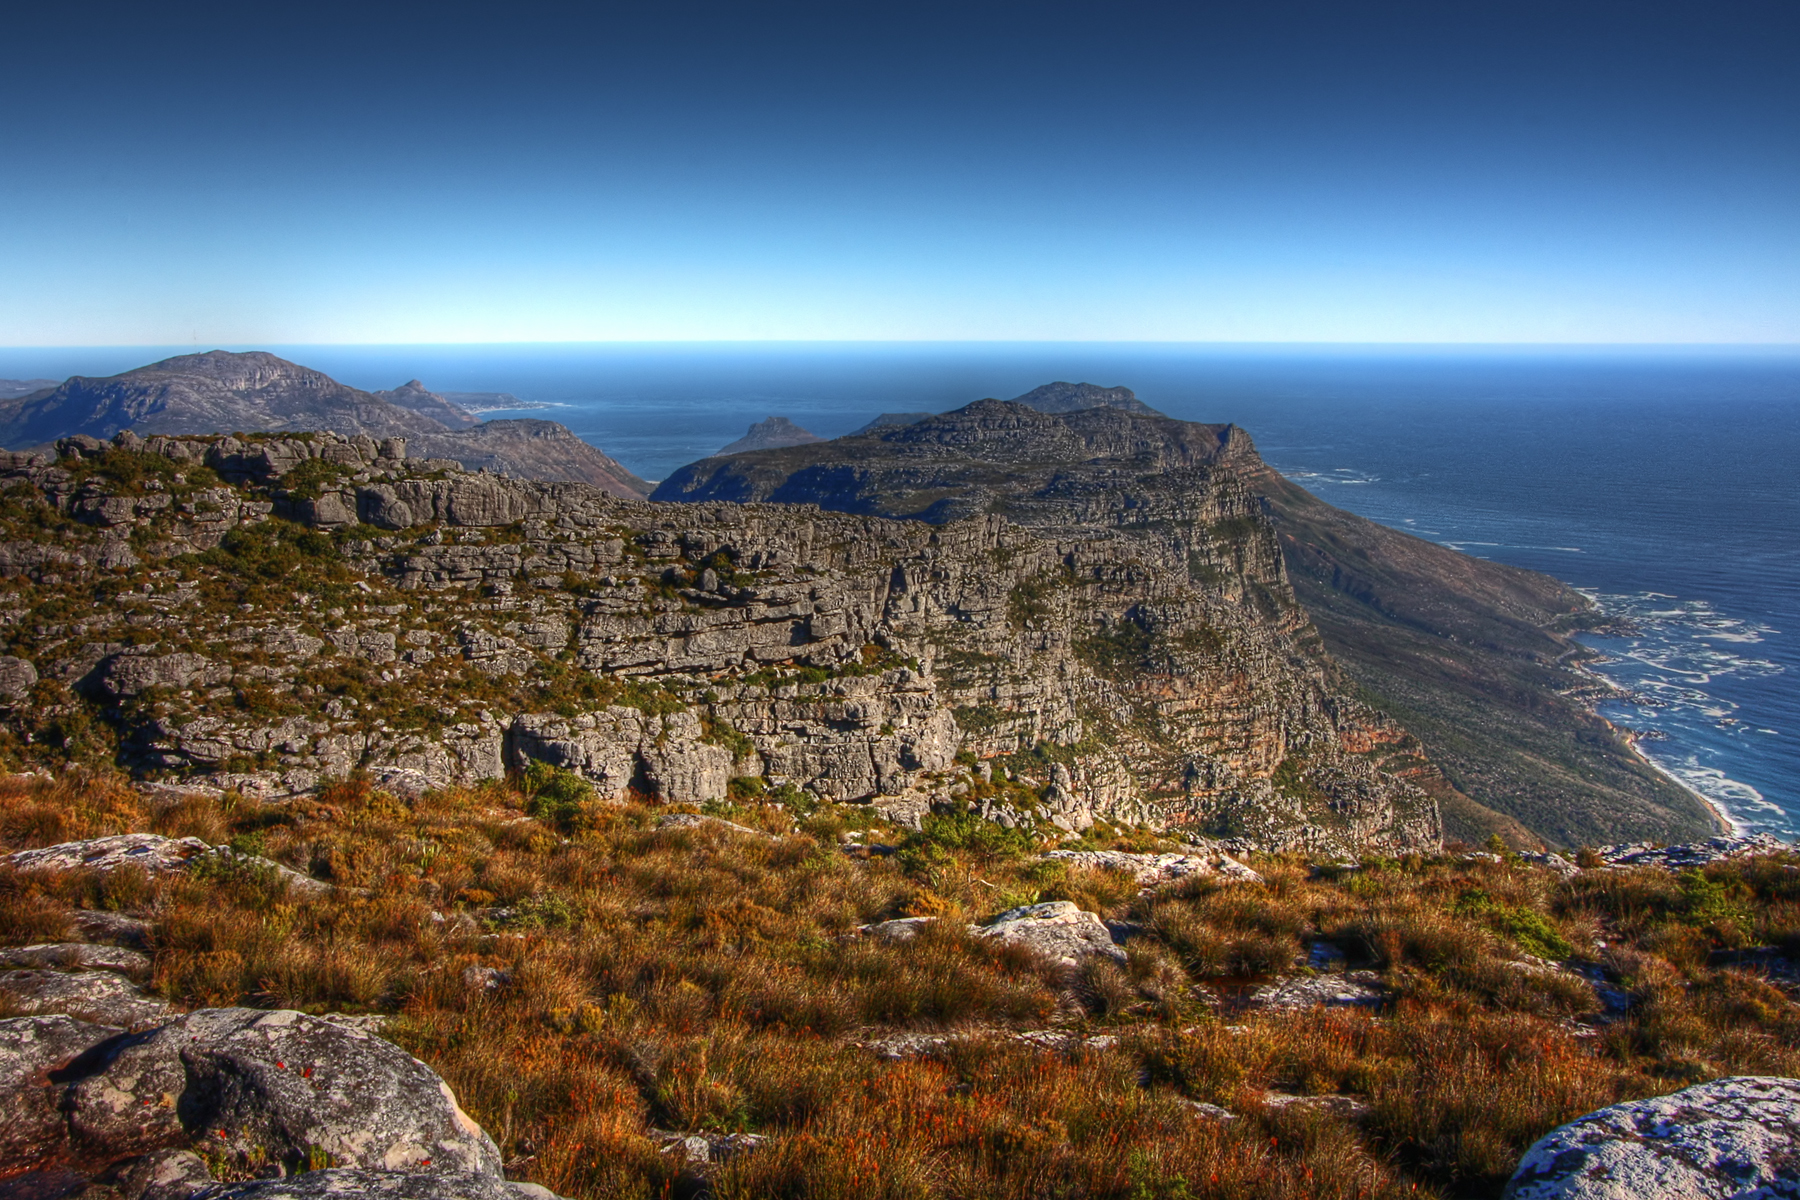 Table Mountain Scenery - HDR, Africa, South, Rock, Rocks, HQ Photo